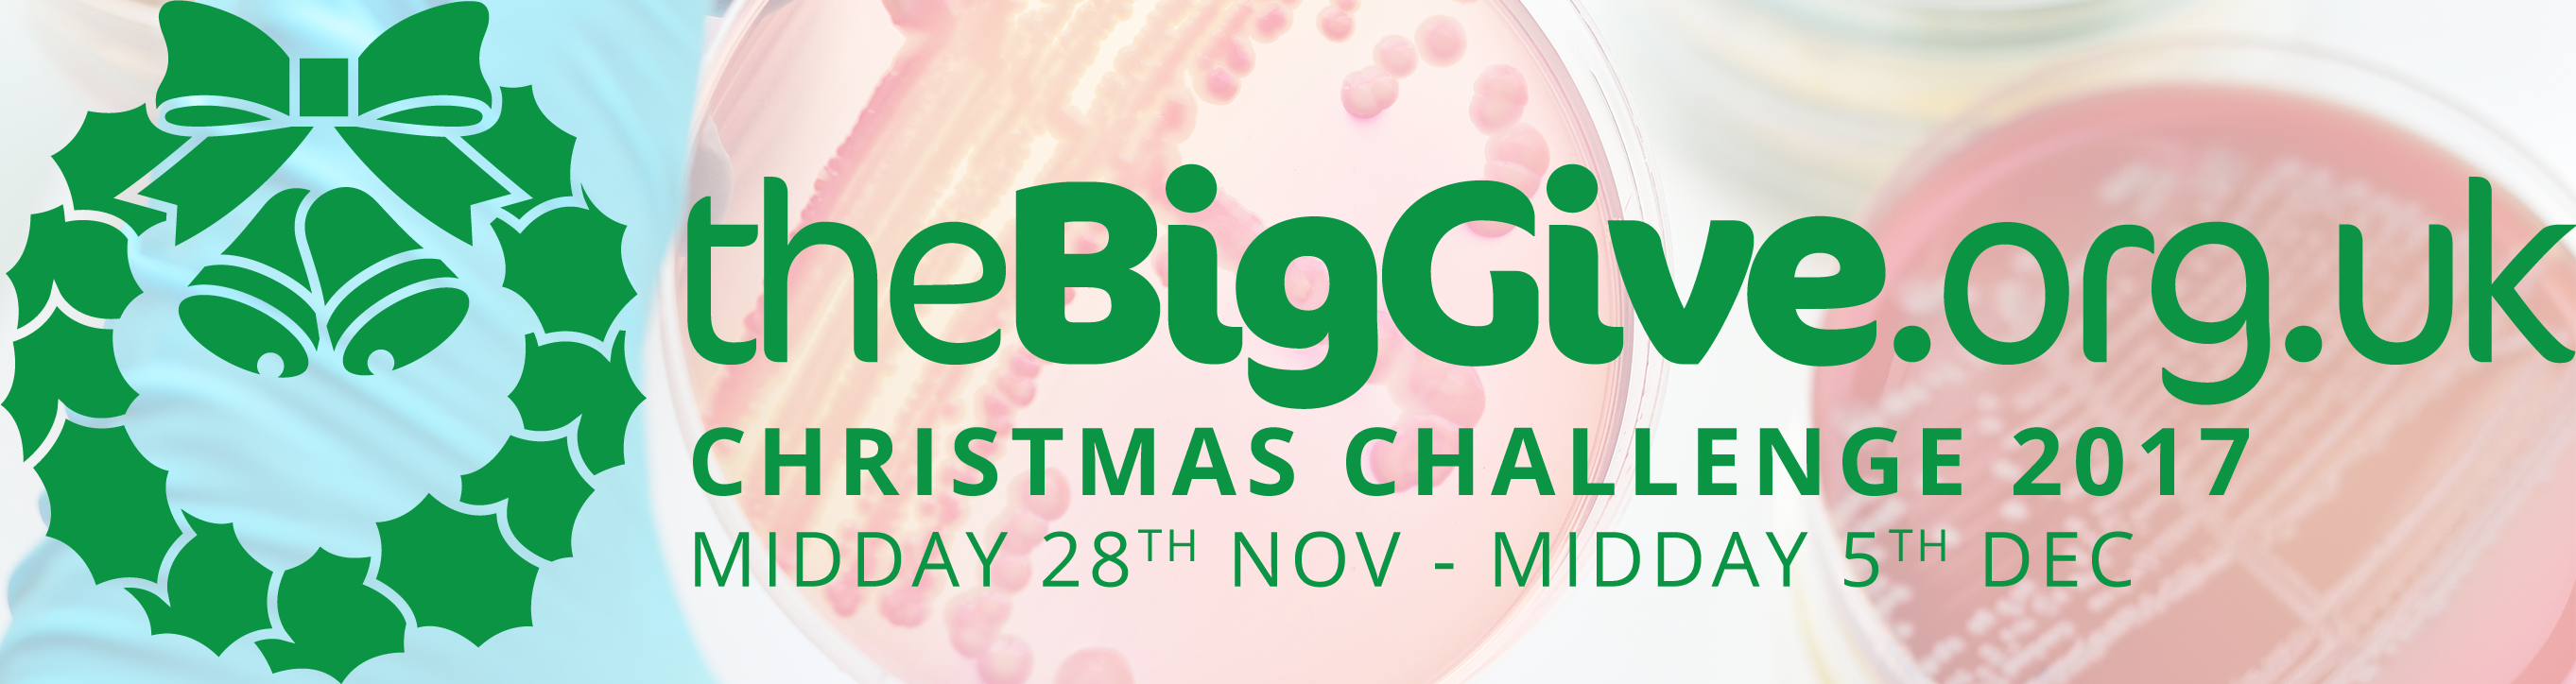 Christmas Challenge.The Big Give Christmas Challenge 2017 Donate To Antibiotic